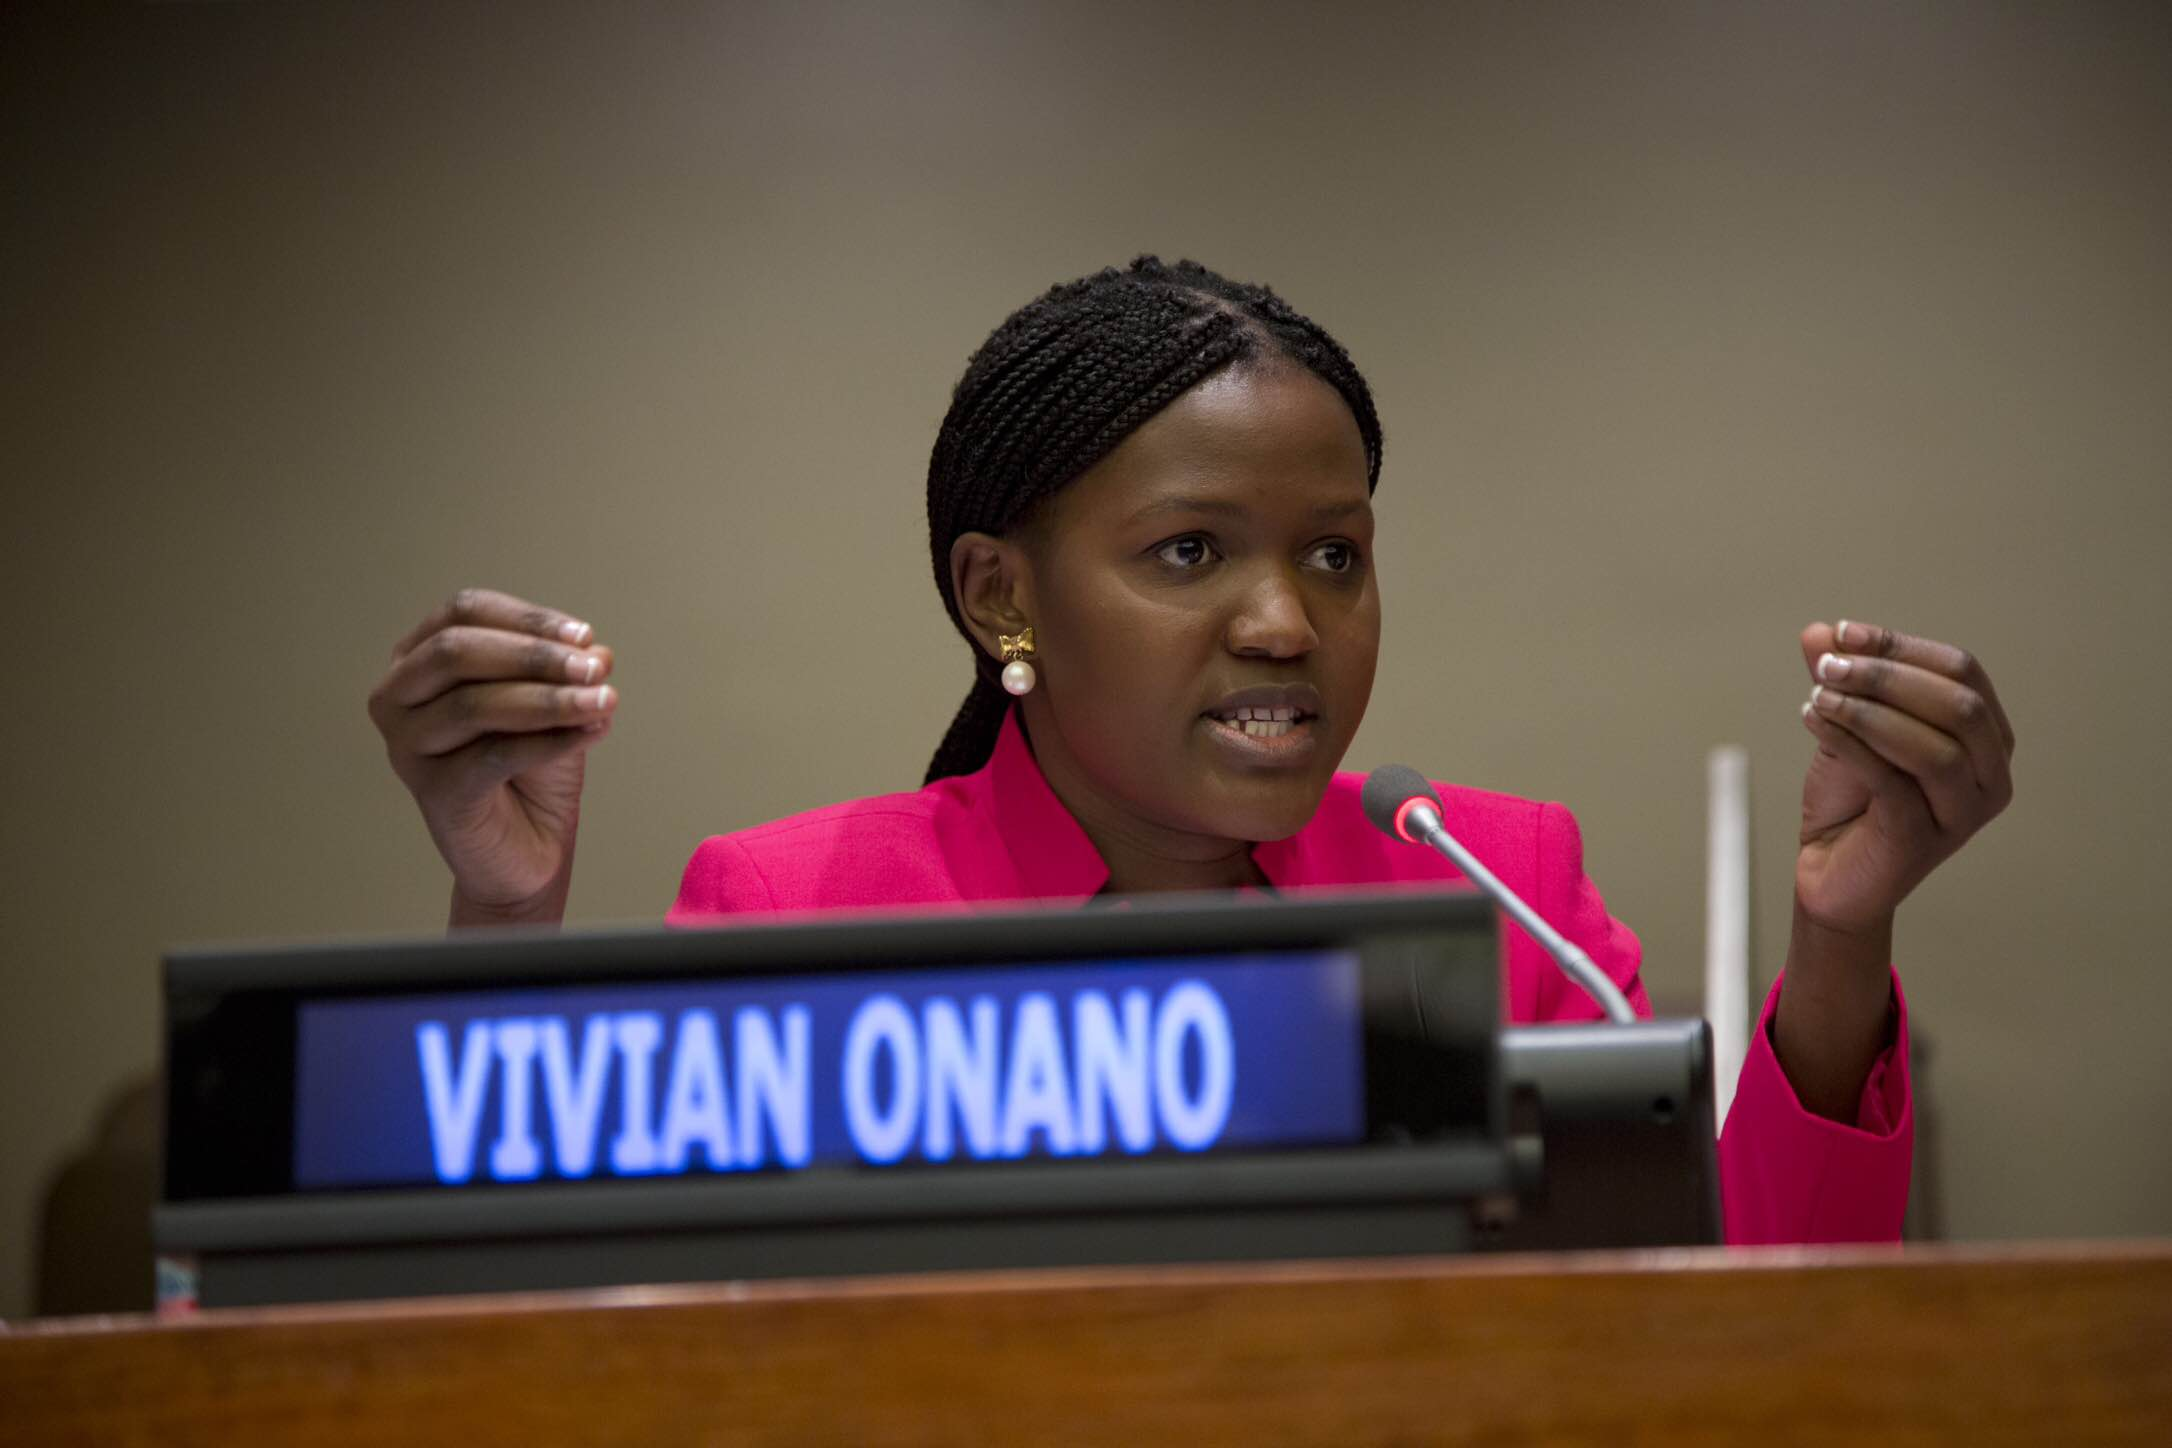 Voices of Hope: A Conversation with Youth Activist Vivian Onano